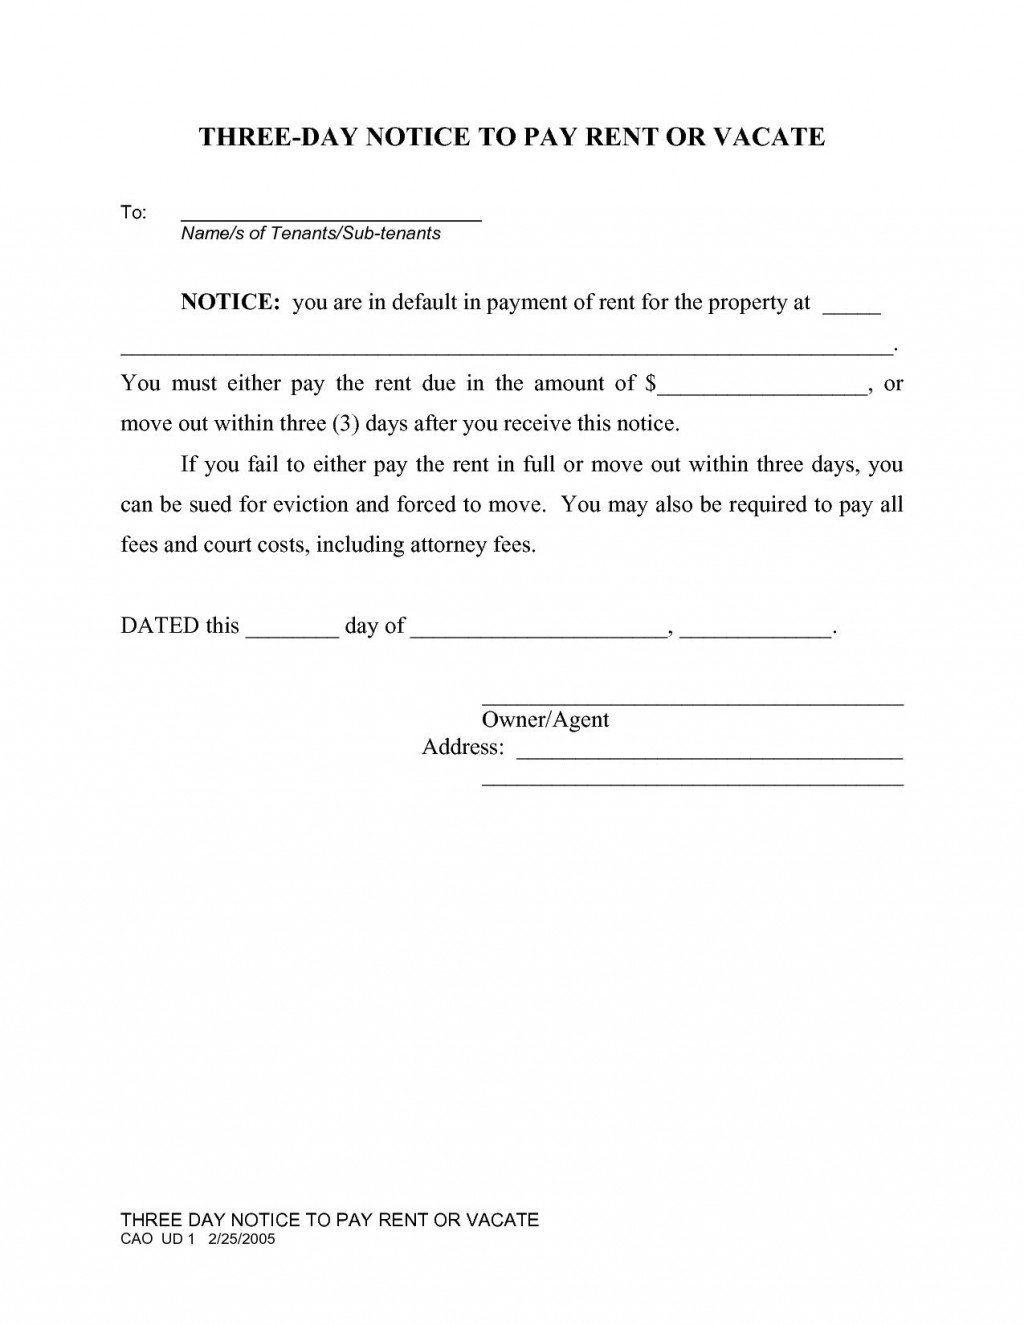 005 Rare 3 Day Eviction Notice Template High Resolution  Form Pdf FloridaLarge